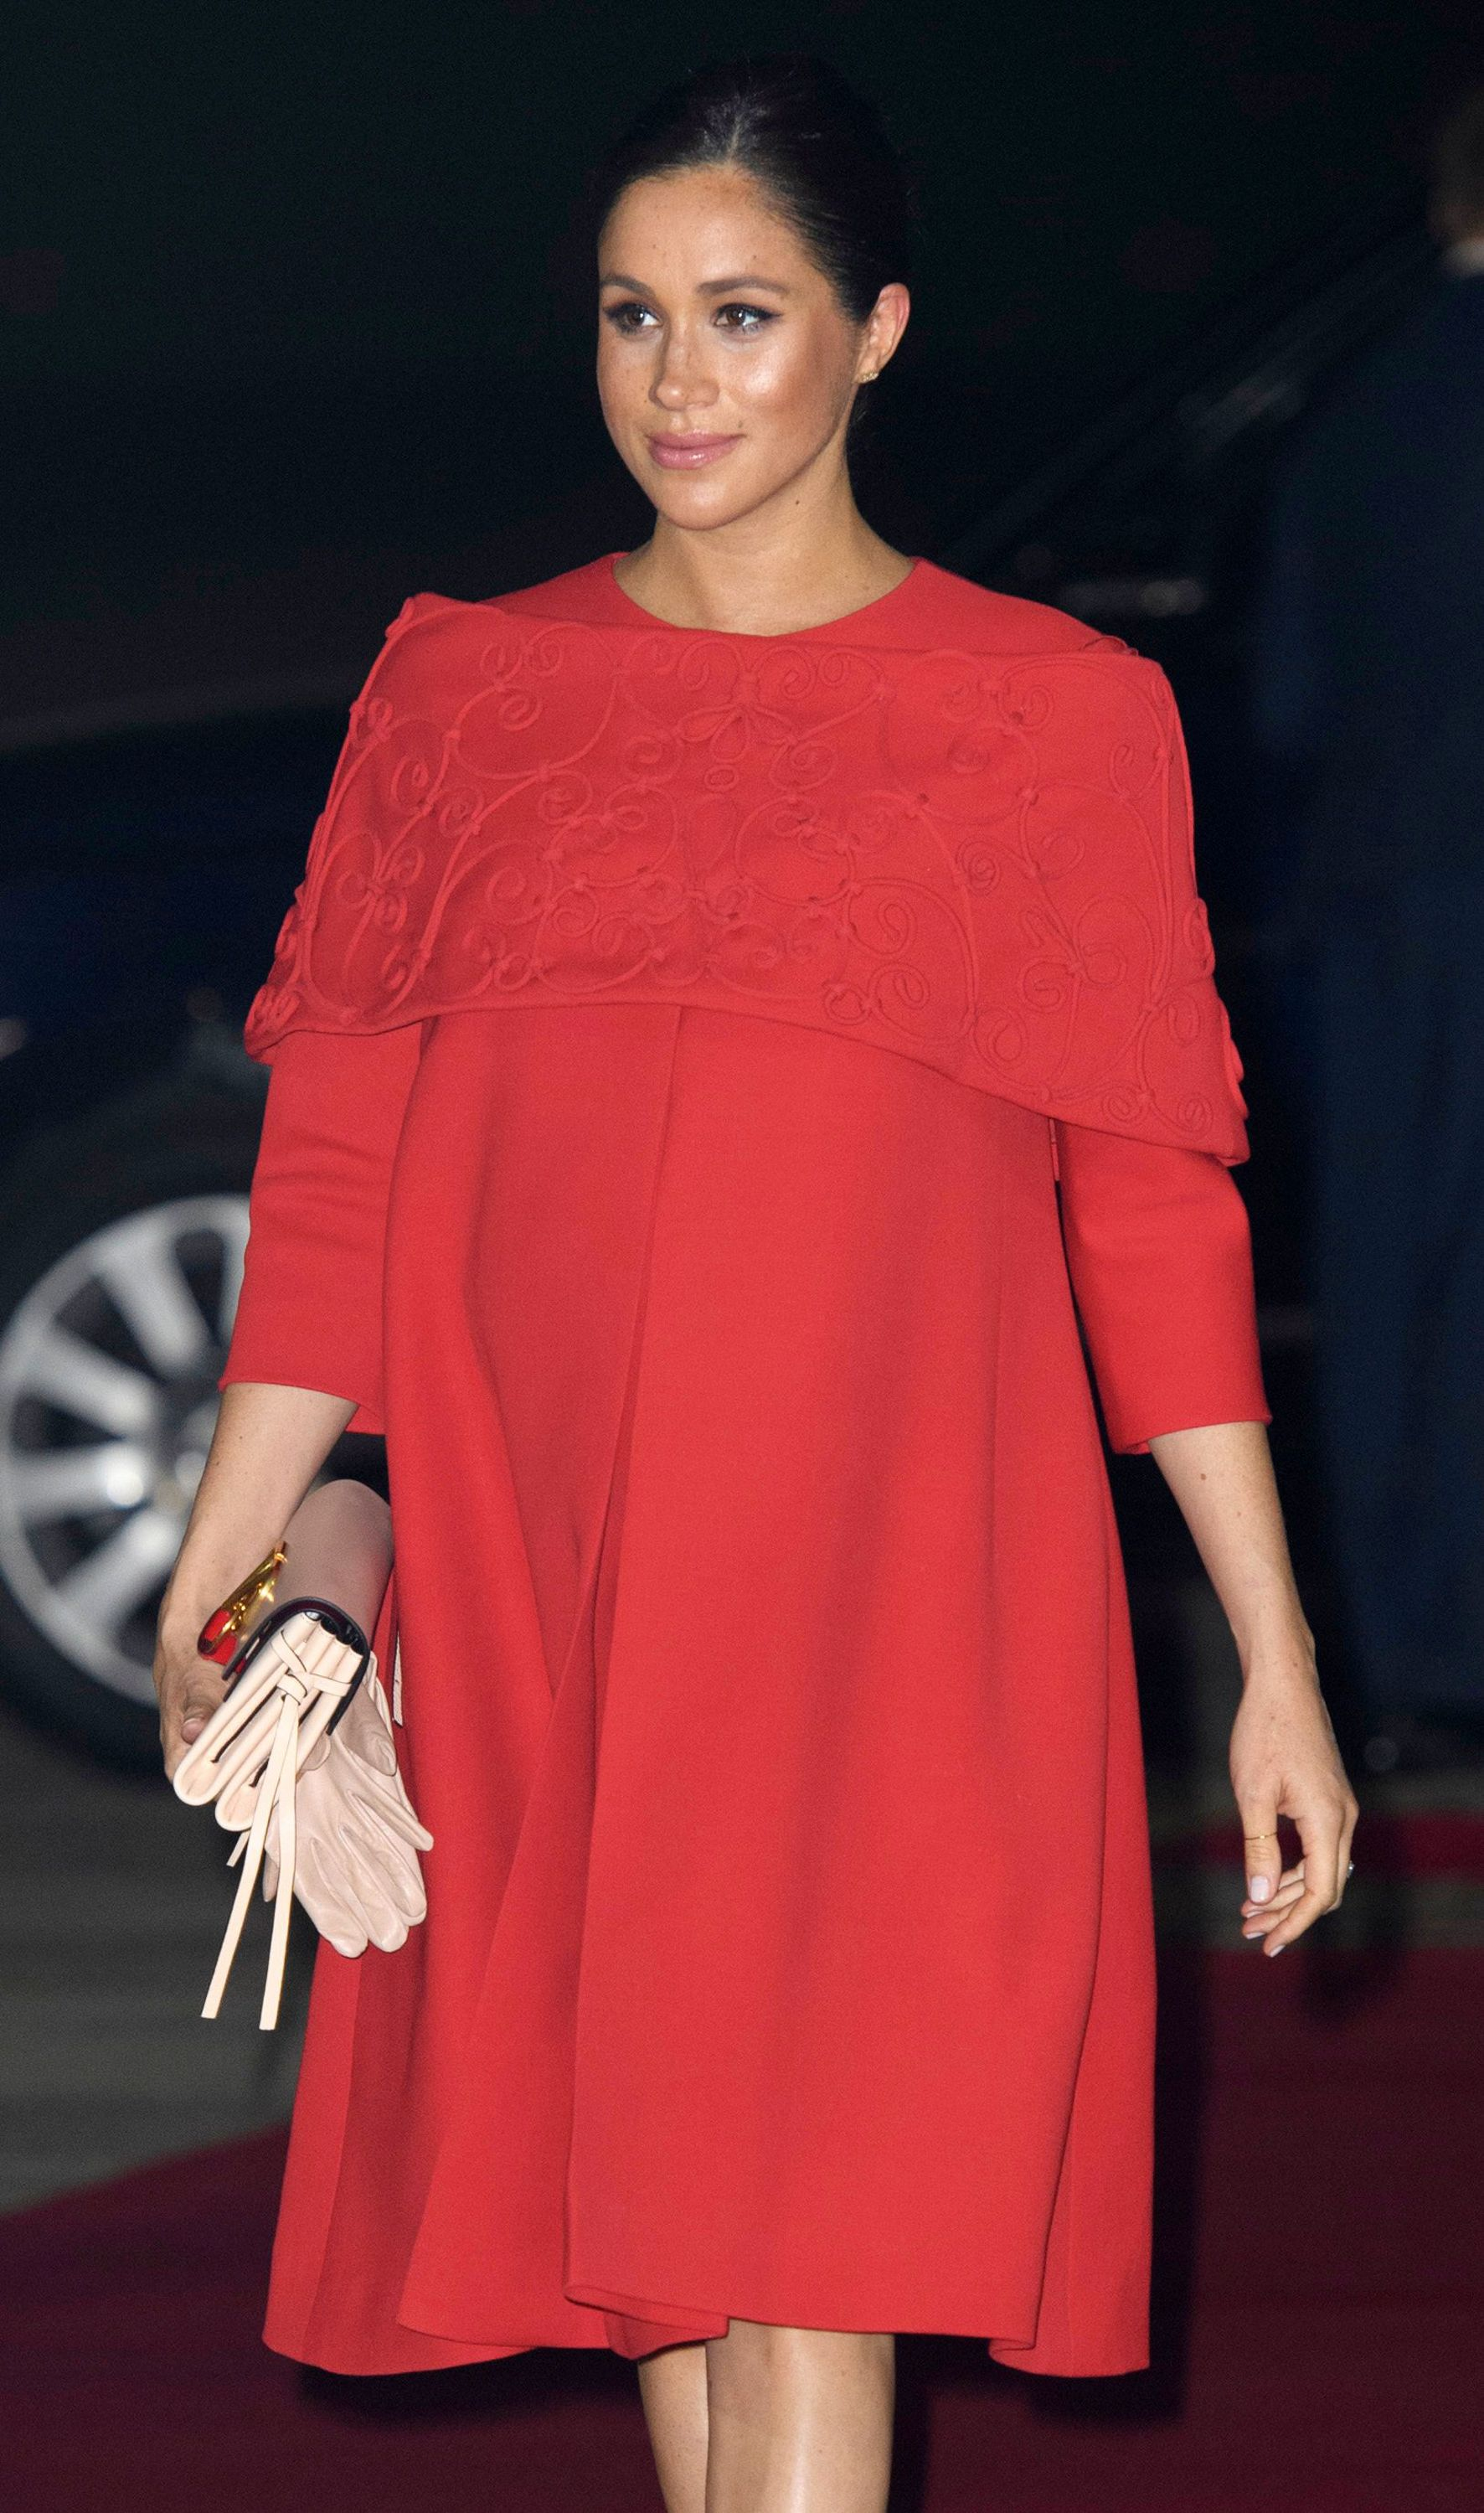 9ab9634c932 Meghan Markle Prince Harry Casablanca Airport Photos - Meghan Markle  Arrived in Morocco Wearing the Most Amazing Red Dress